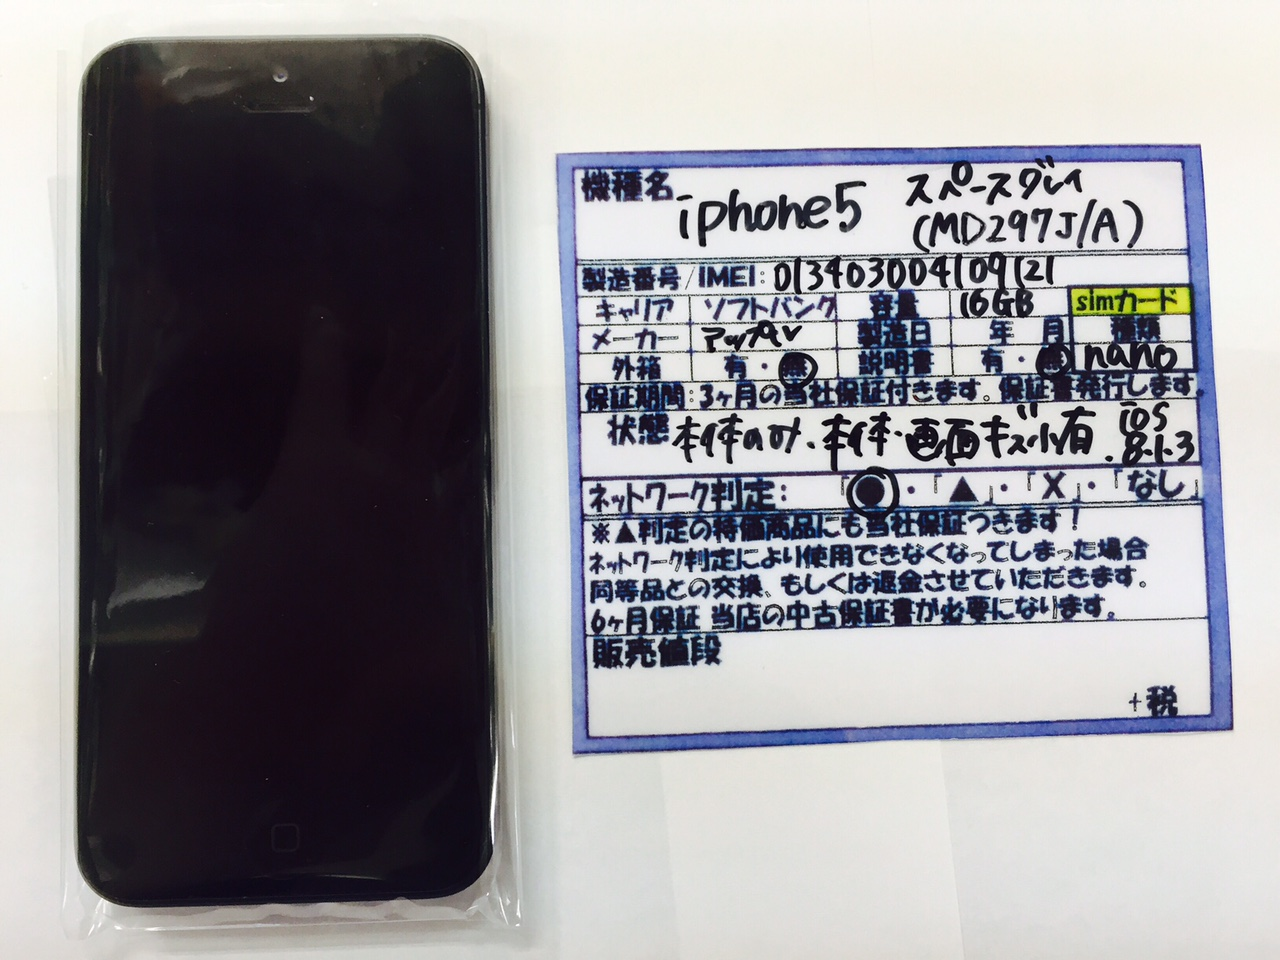 iPhone5 MD297J 16GB 白ロム